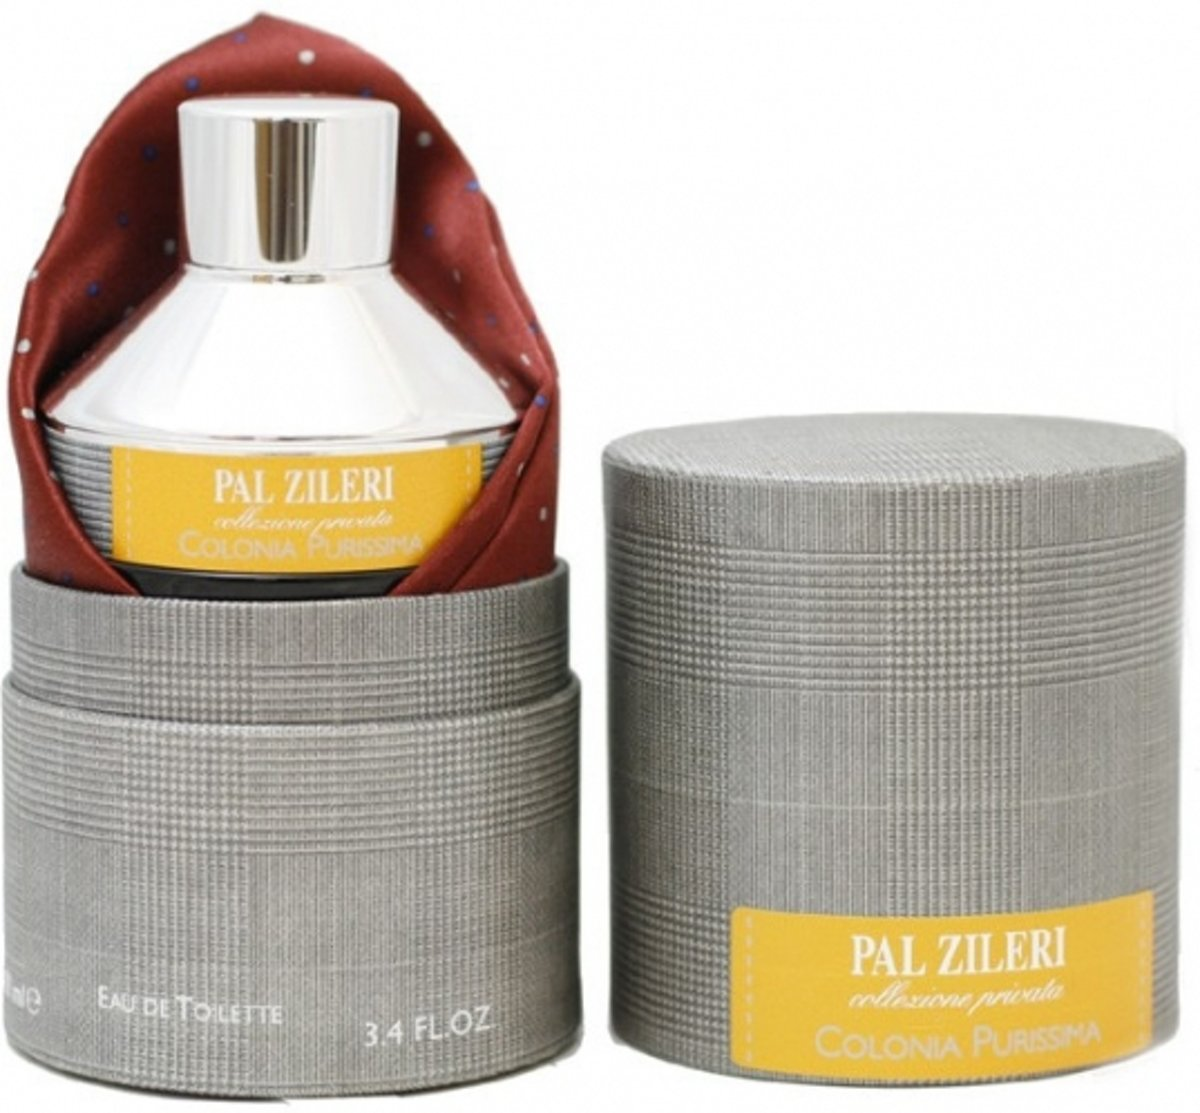 Pal Zileri Colonia Purissima Eau de Toilette Spray 50 ml